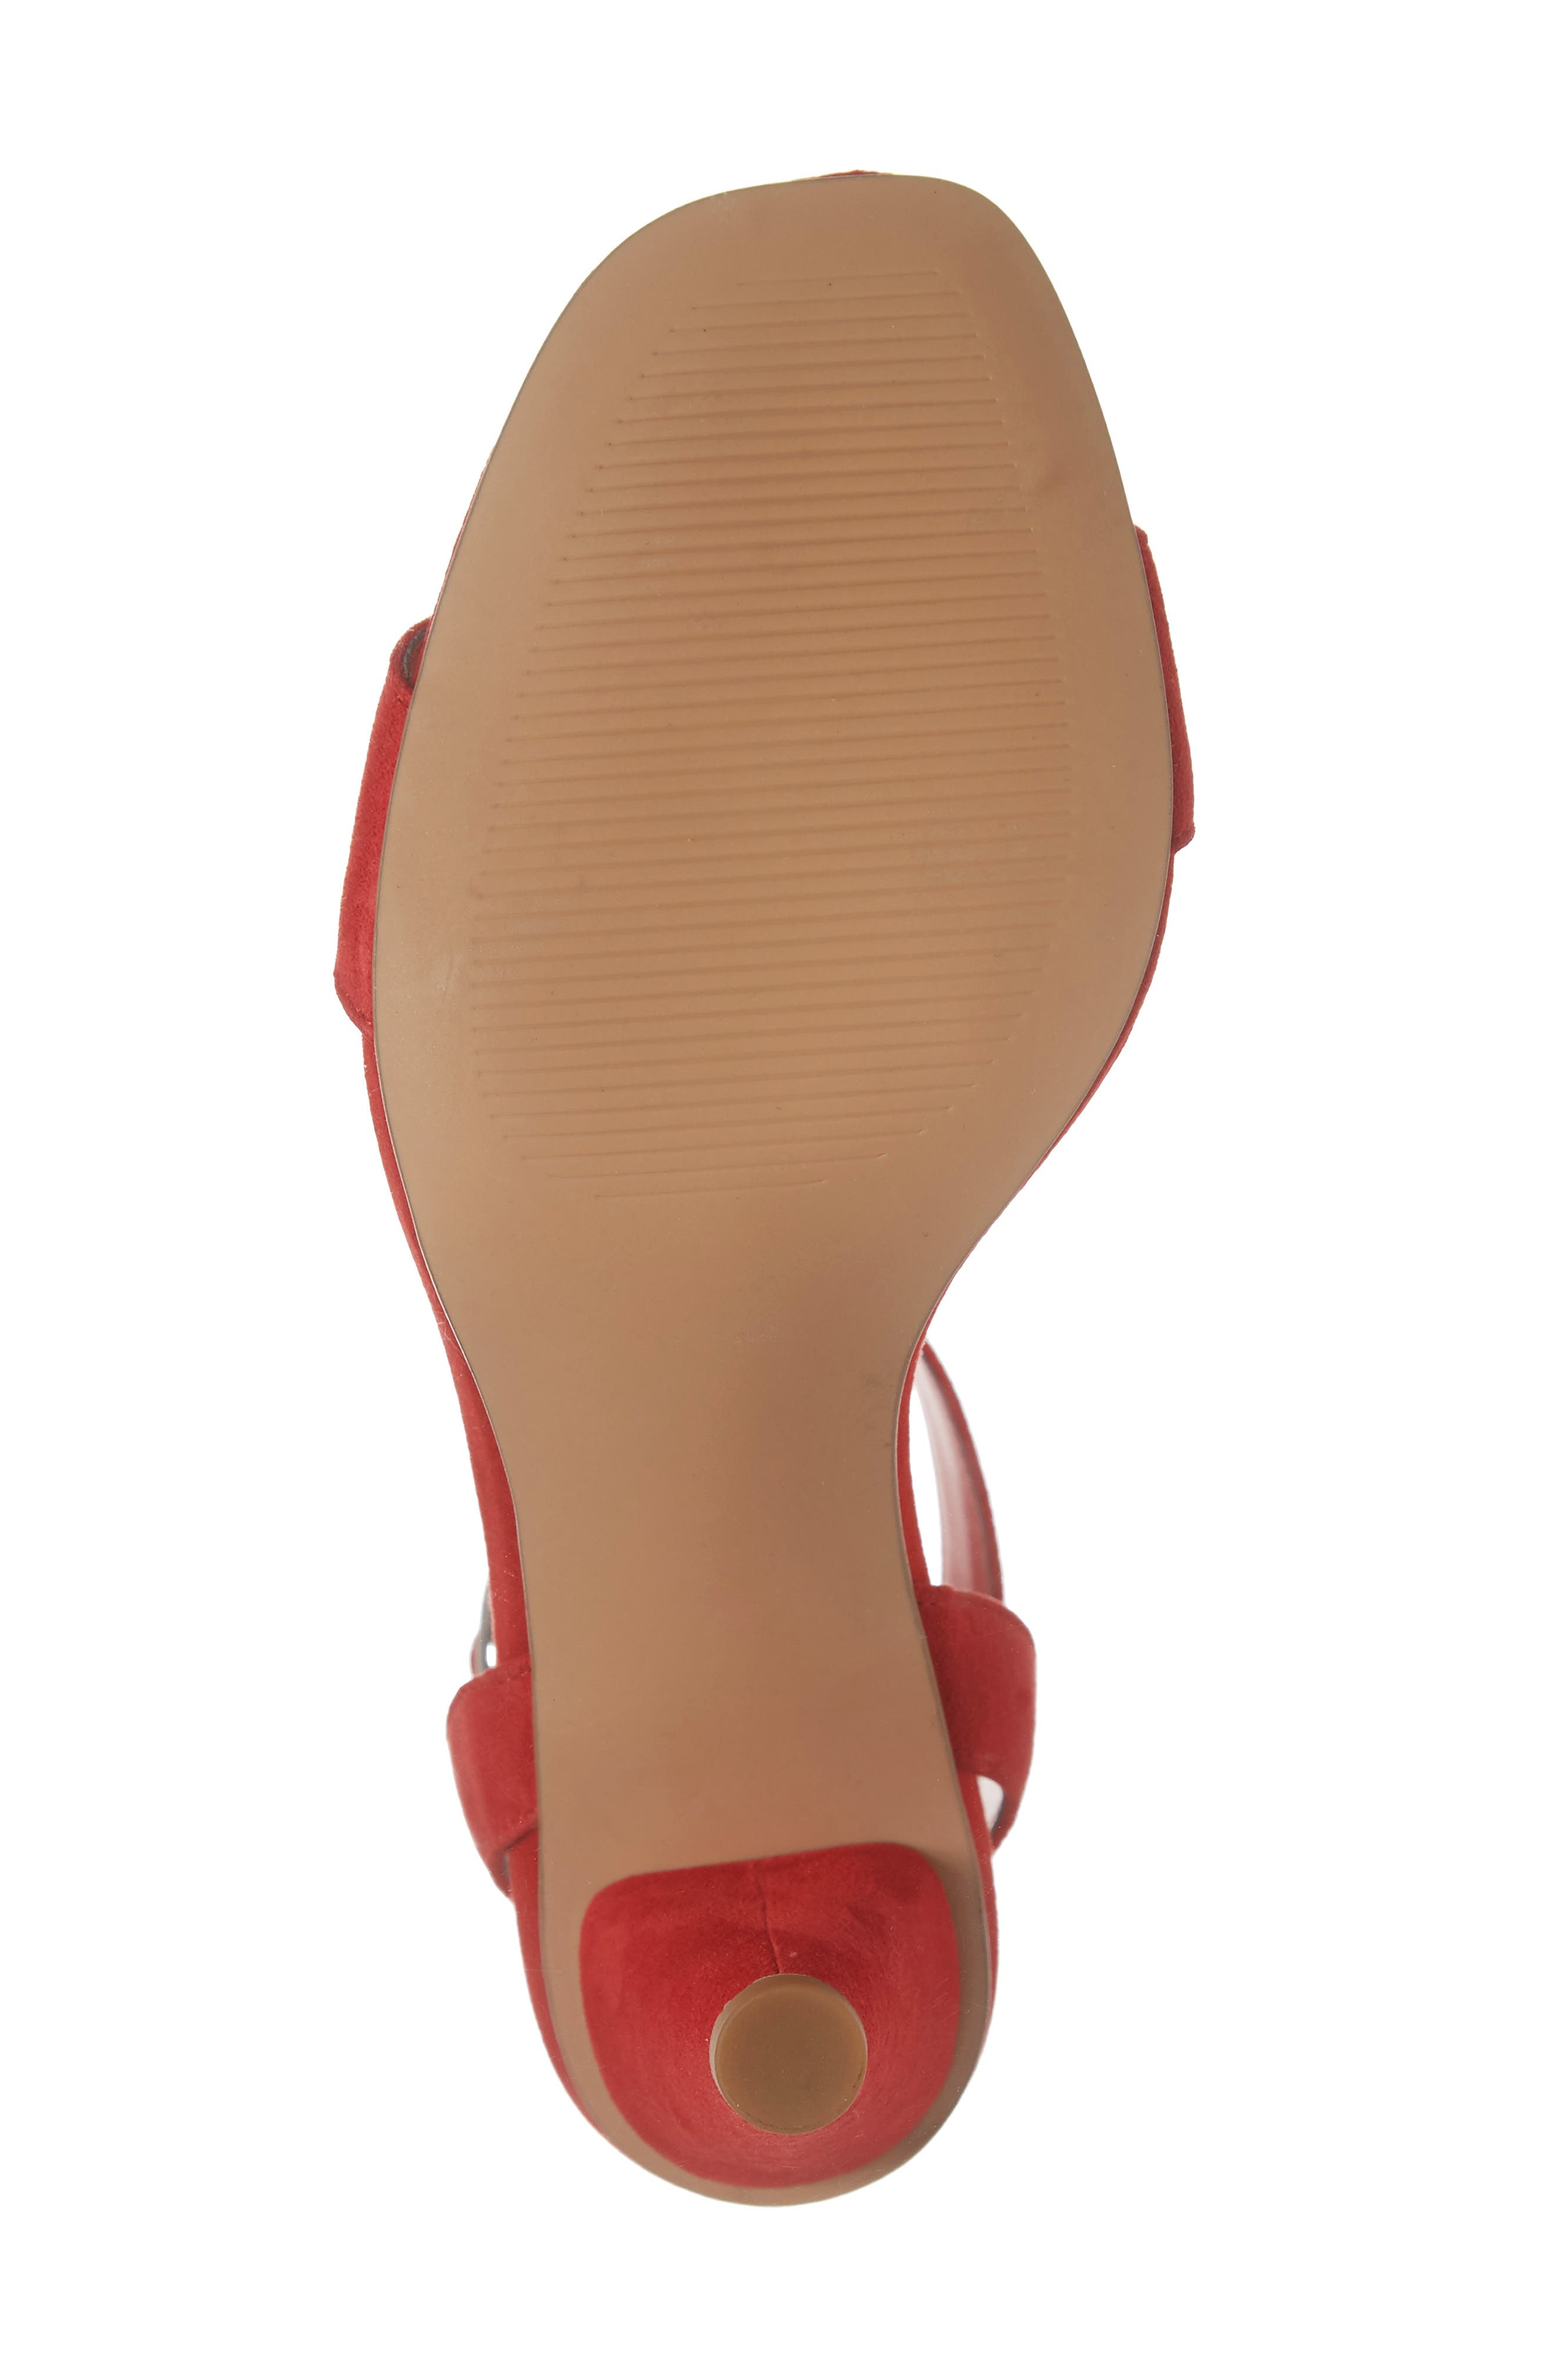 Cleo Cone Heel Sandal,                             Alternate thumbnail 6, color,                             RED SUEDE